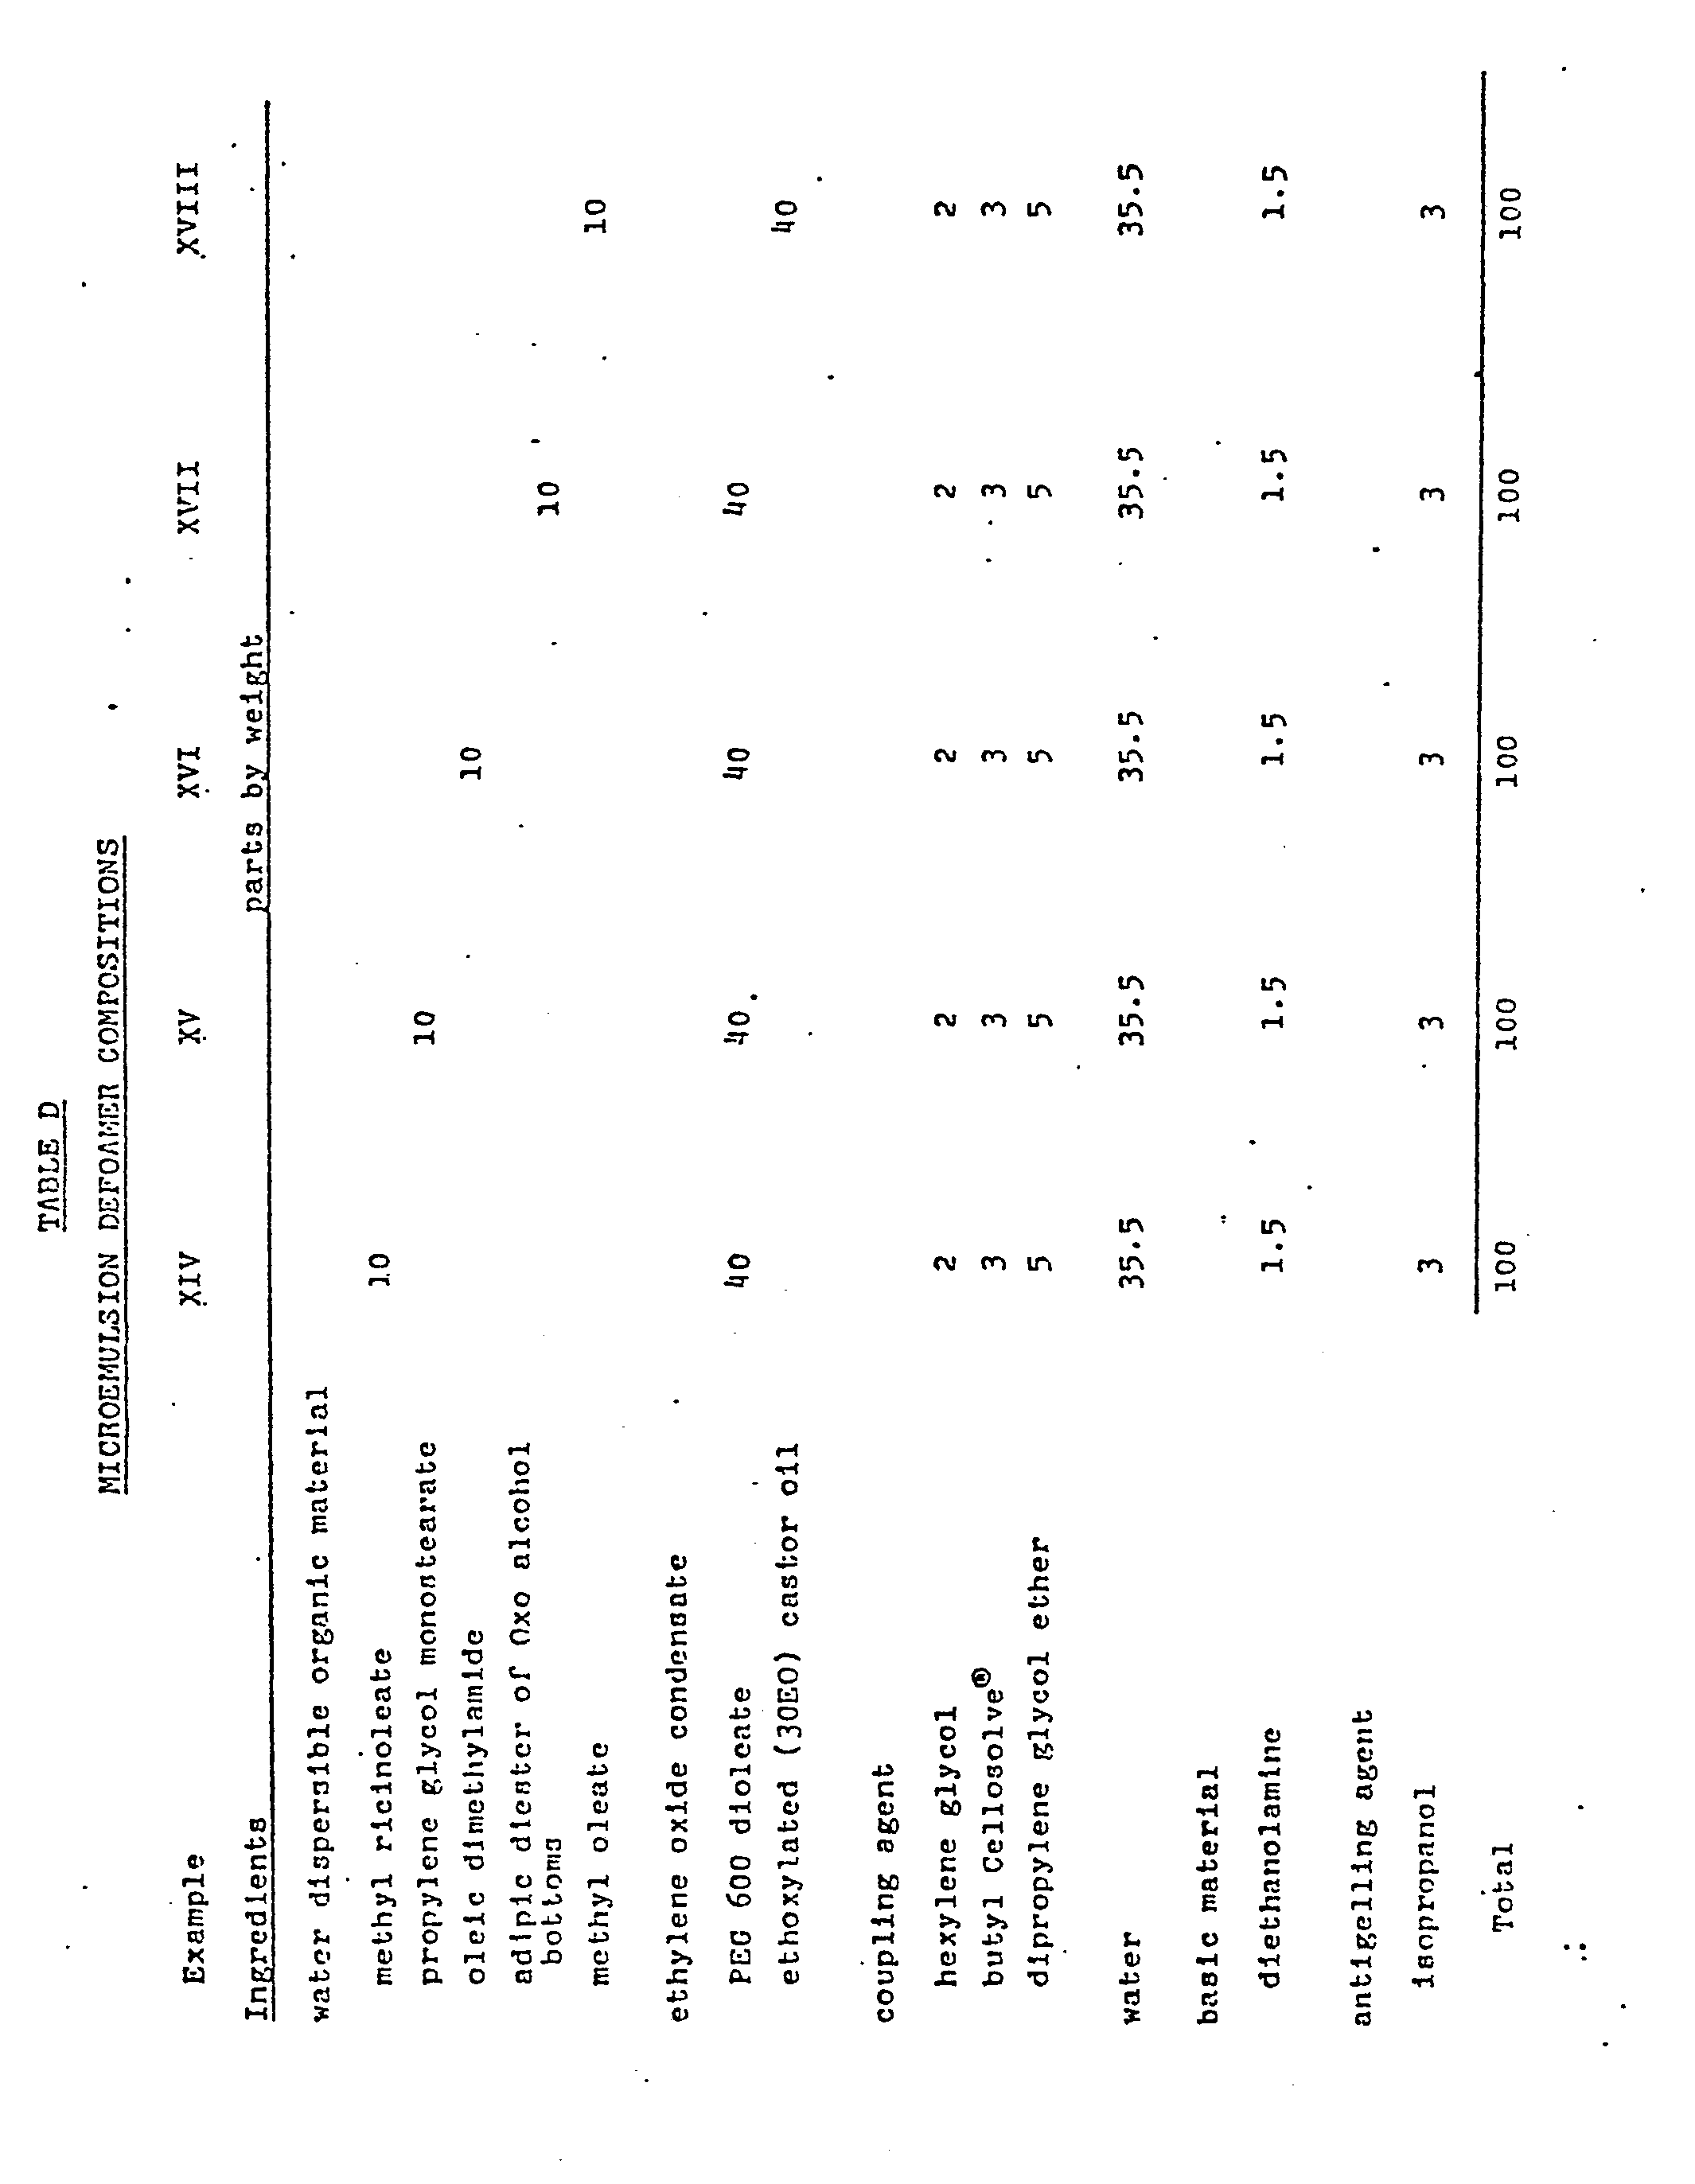 Defoamer addition rate latex